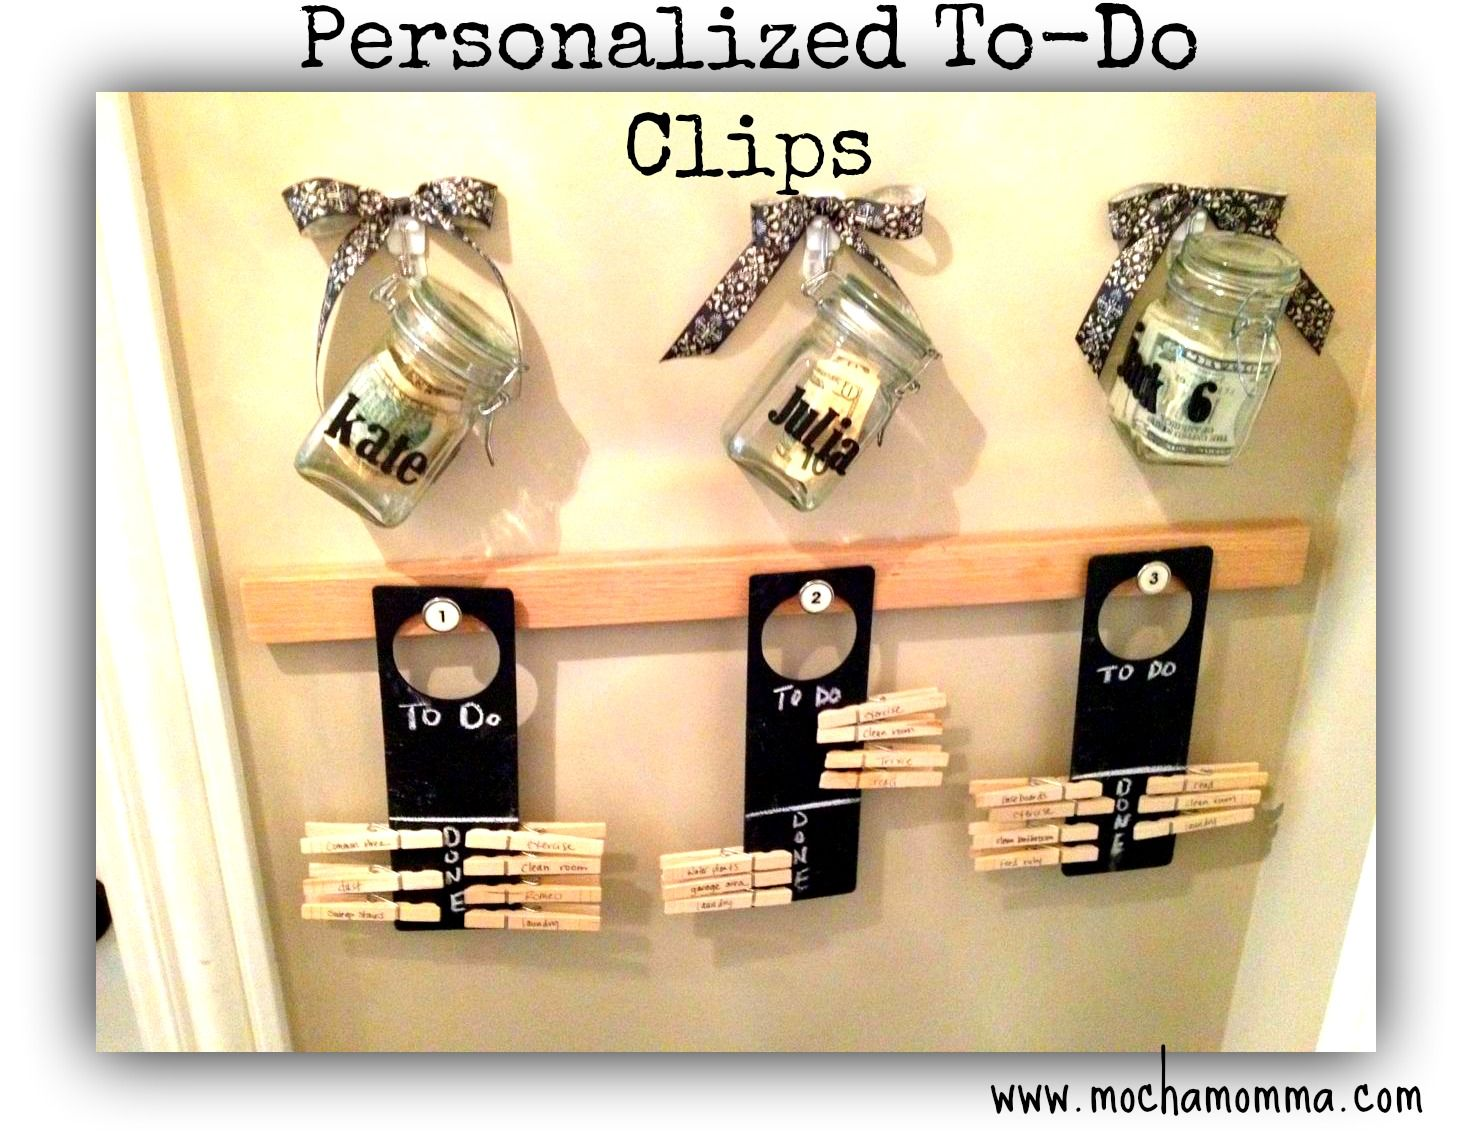 Chore Clips On Door Knob Sign Todo Lists With Hanging